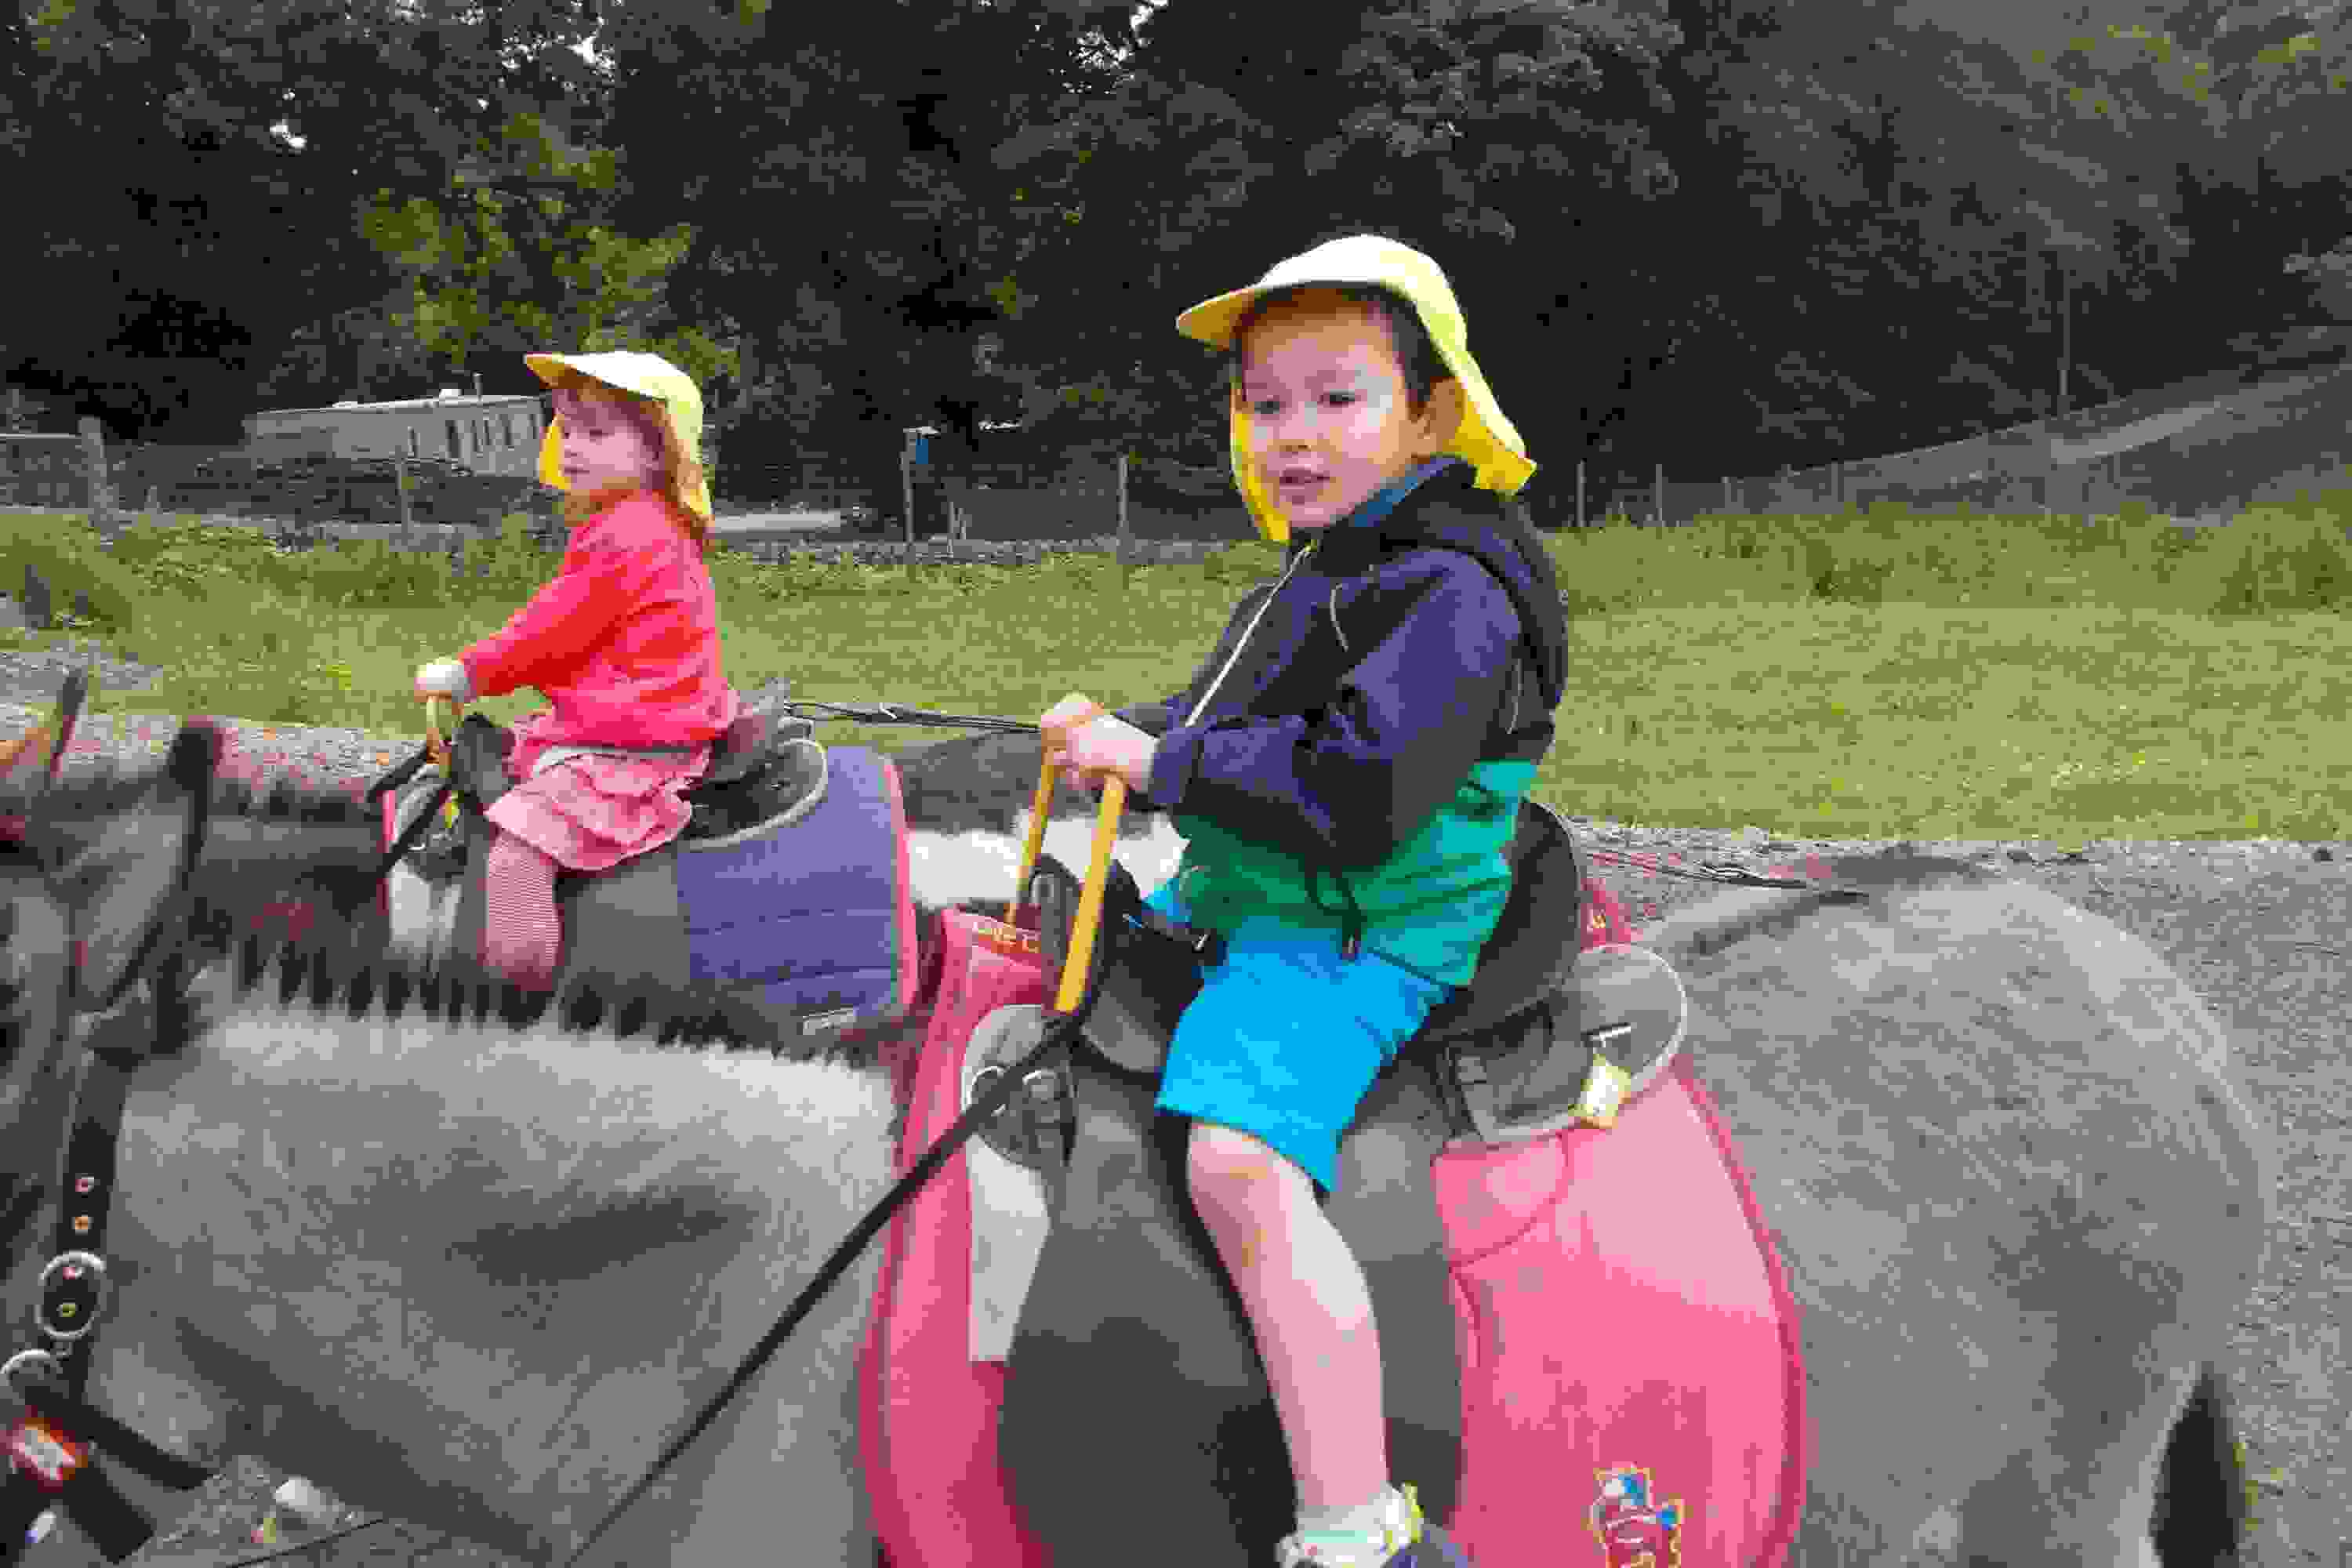 Caterpillars Smithills Farm - riding donkeys